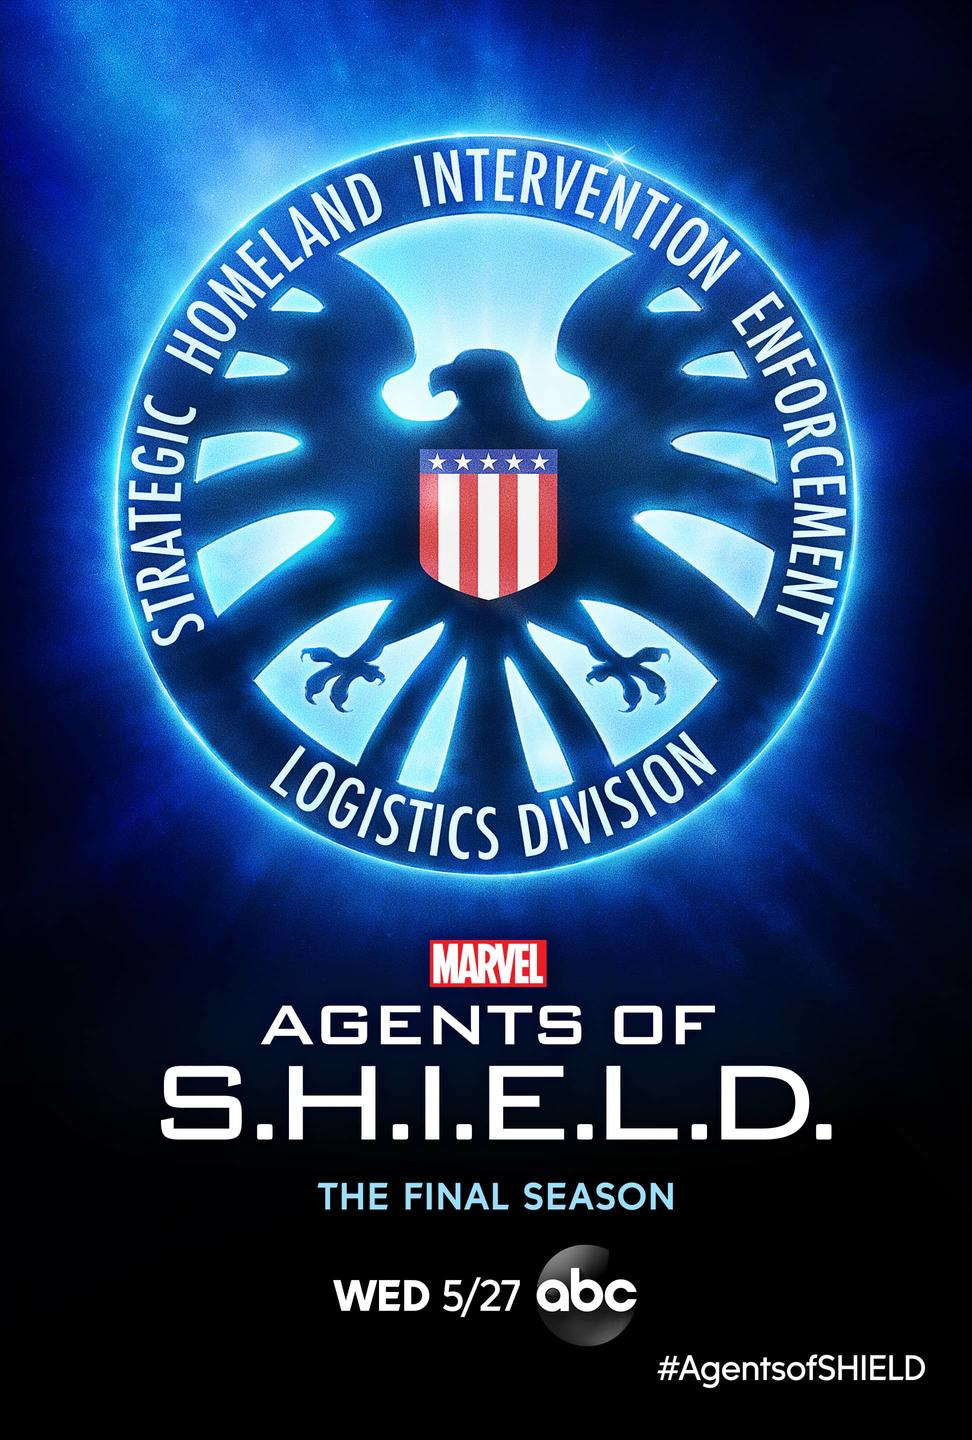 'Marvel's Agents of S.H.I.E.L.D.' Returns for Seventh and Final Season This May - Image 1